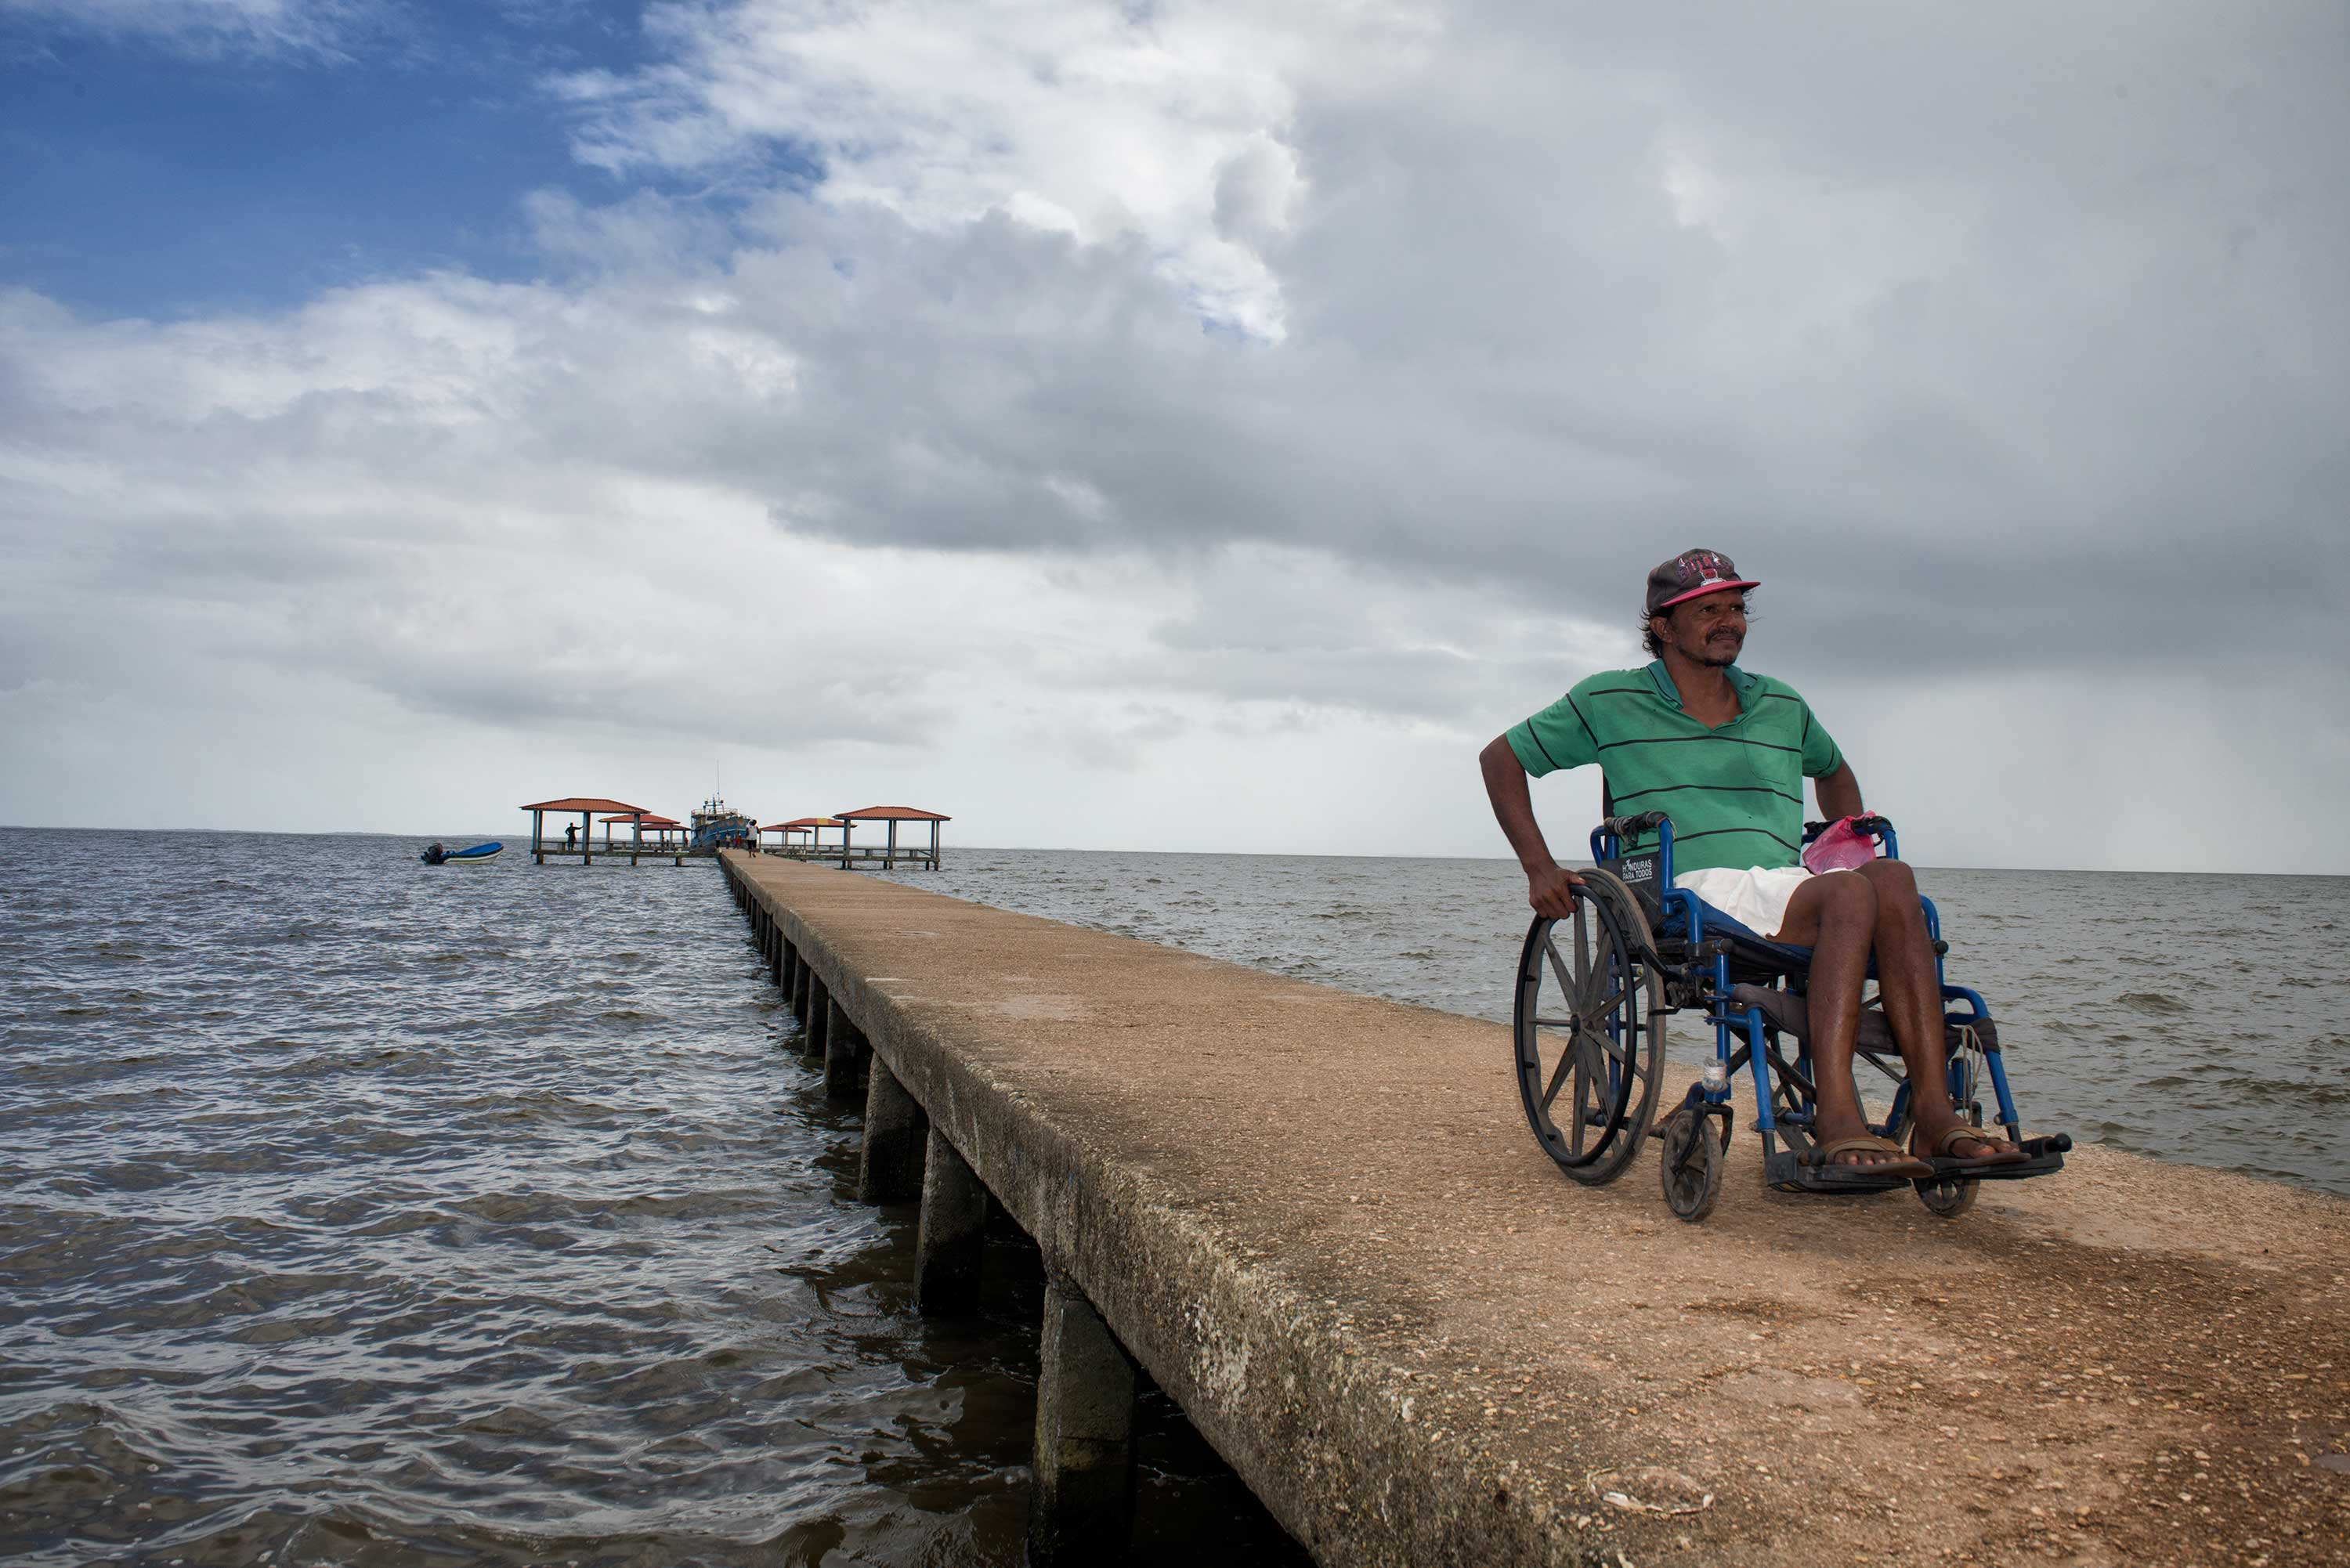 A Honduran man in a baseball cap, green polo, and white shorts pushes himself in a wheelchair down a pier against the backdrop of the ocean.